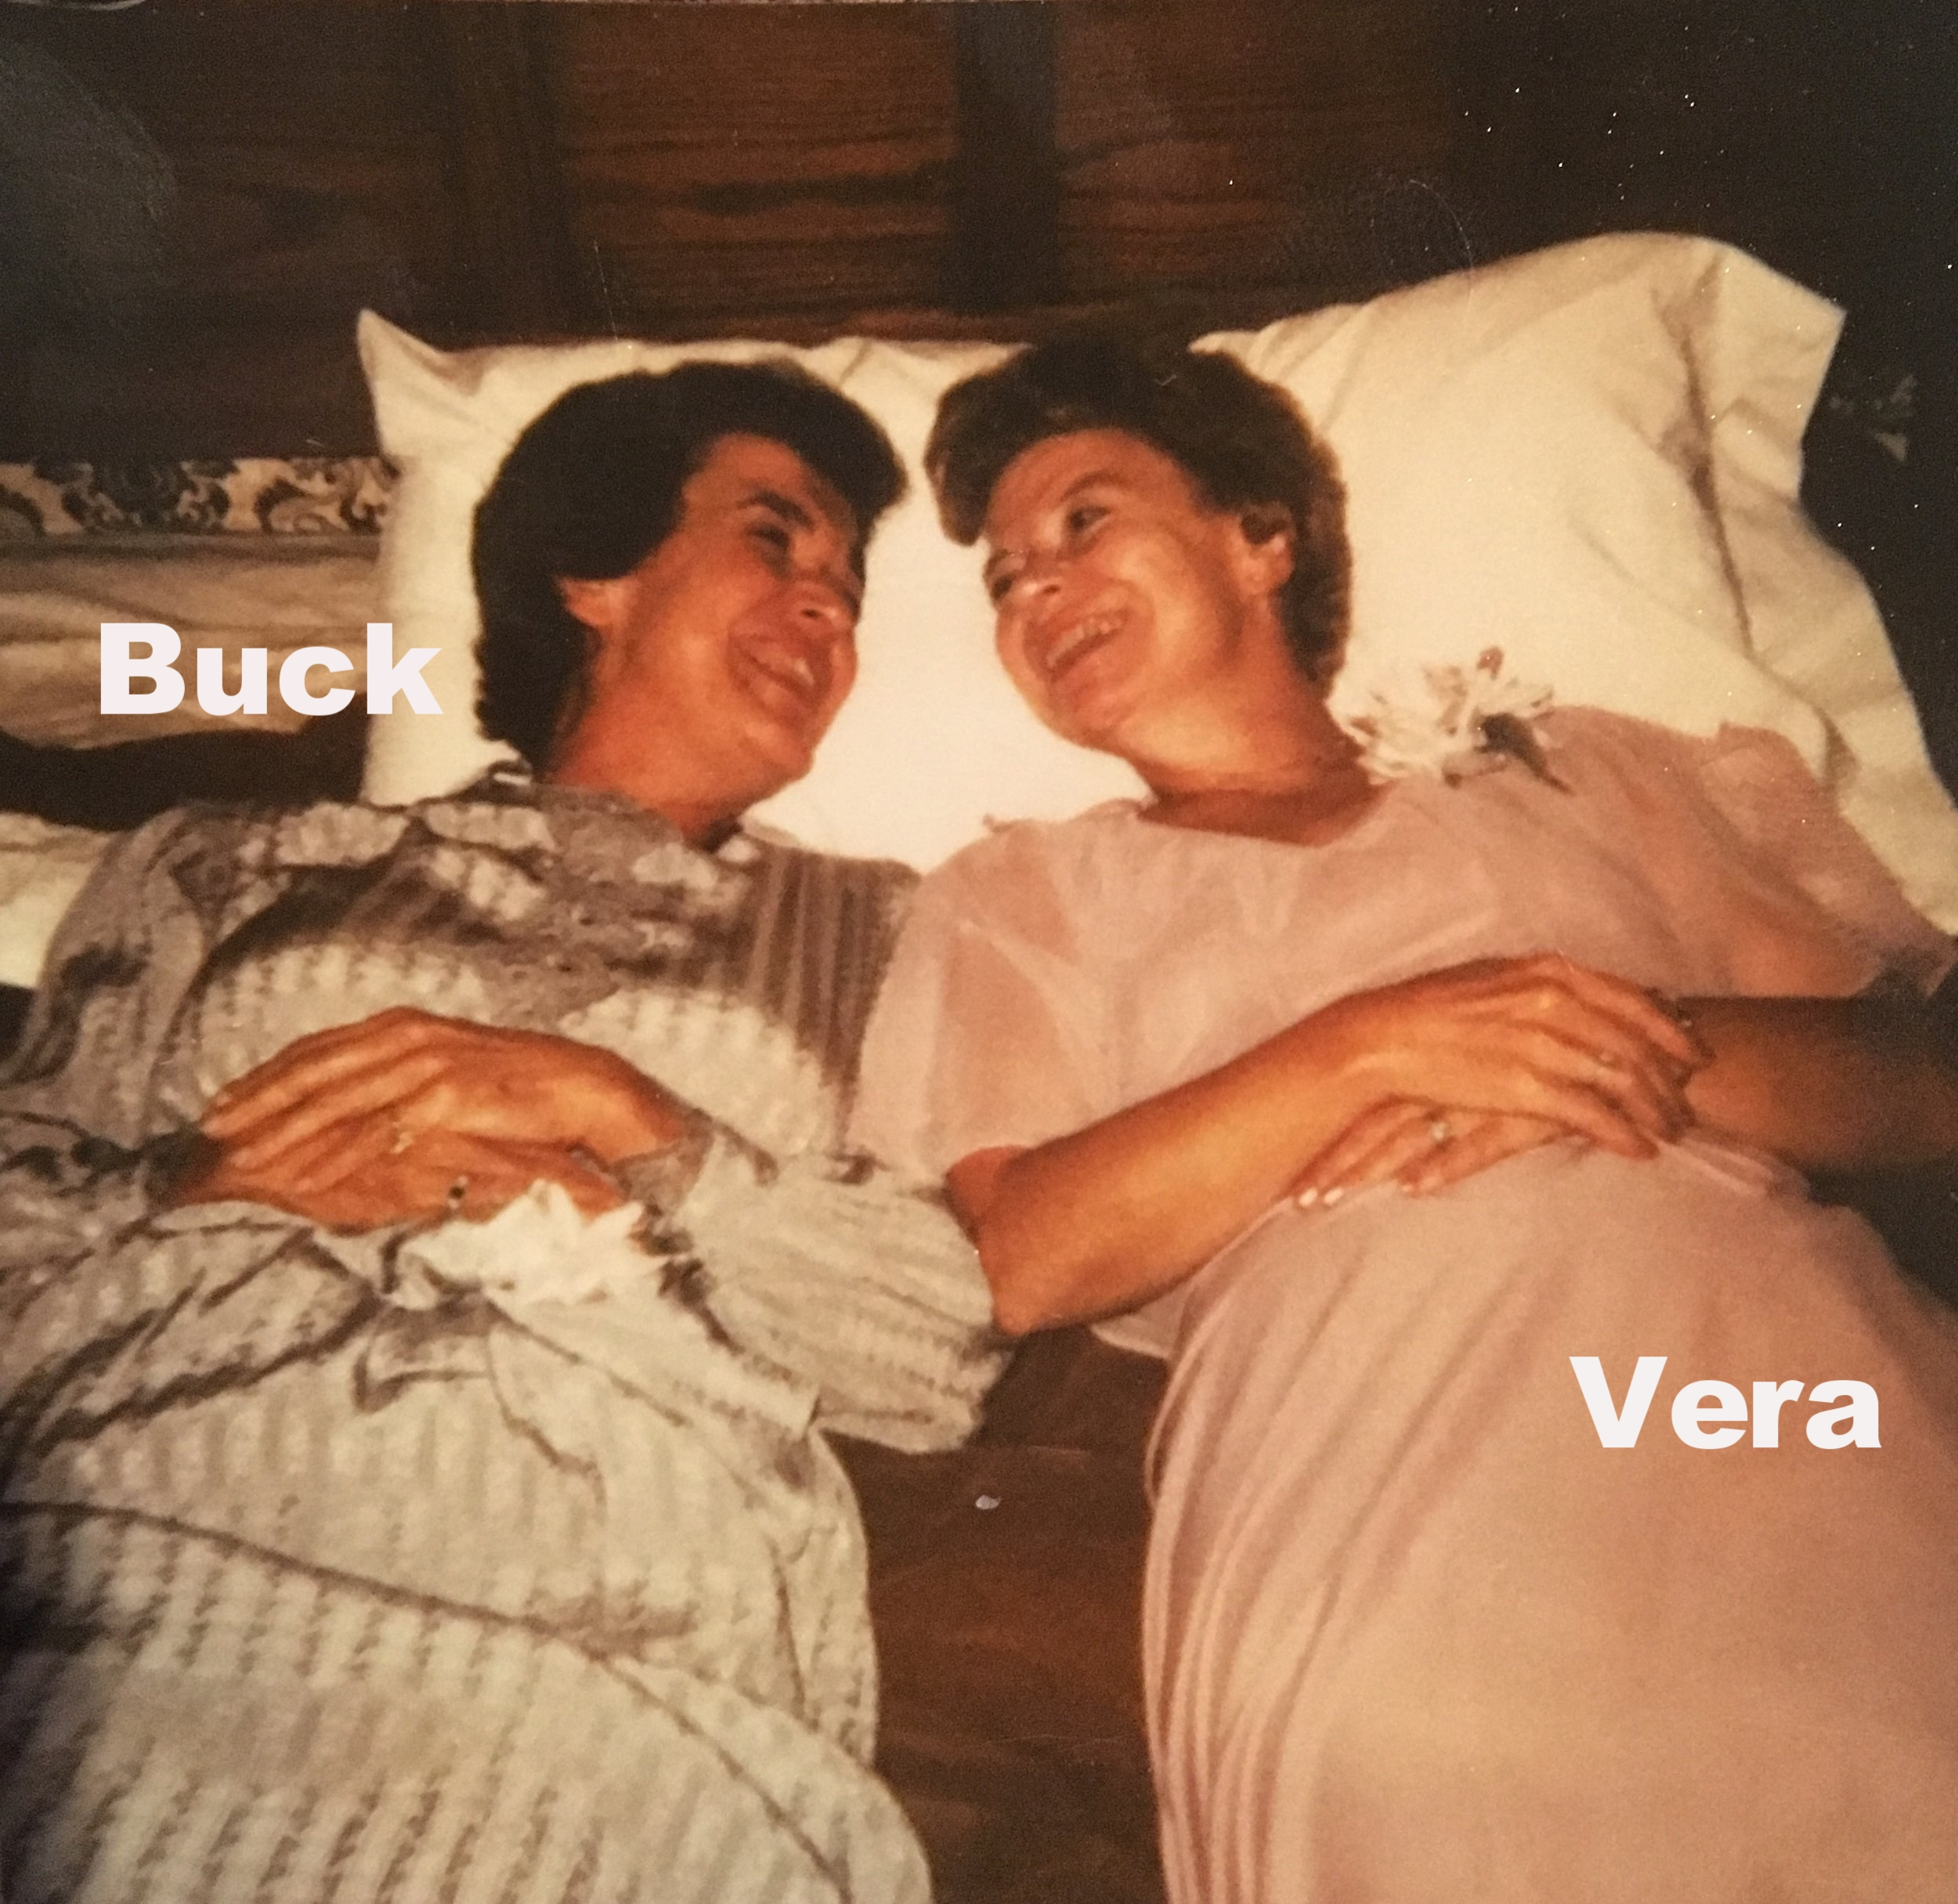 Who are Vera & Buck? - Vera & Buck are two trendsetters, two trailblazers, two unique, strong, beautiful women. Without them we would be nothing...literally! They are grandmothers and mothers who have shaped our family.